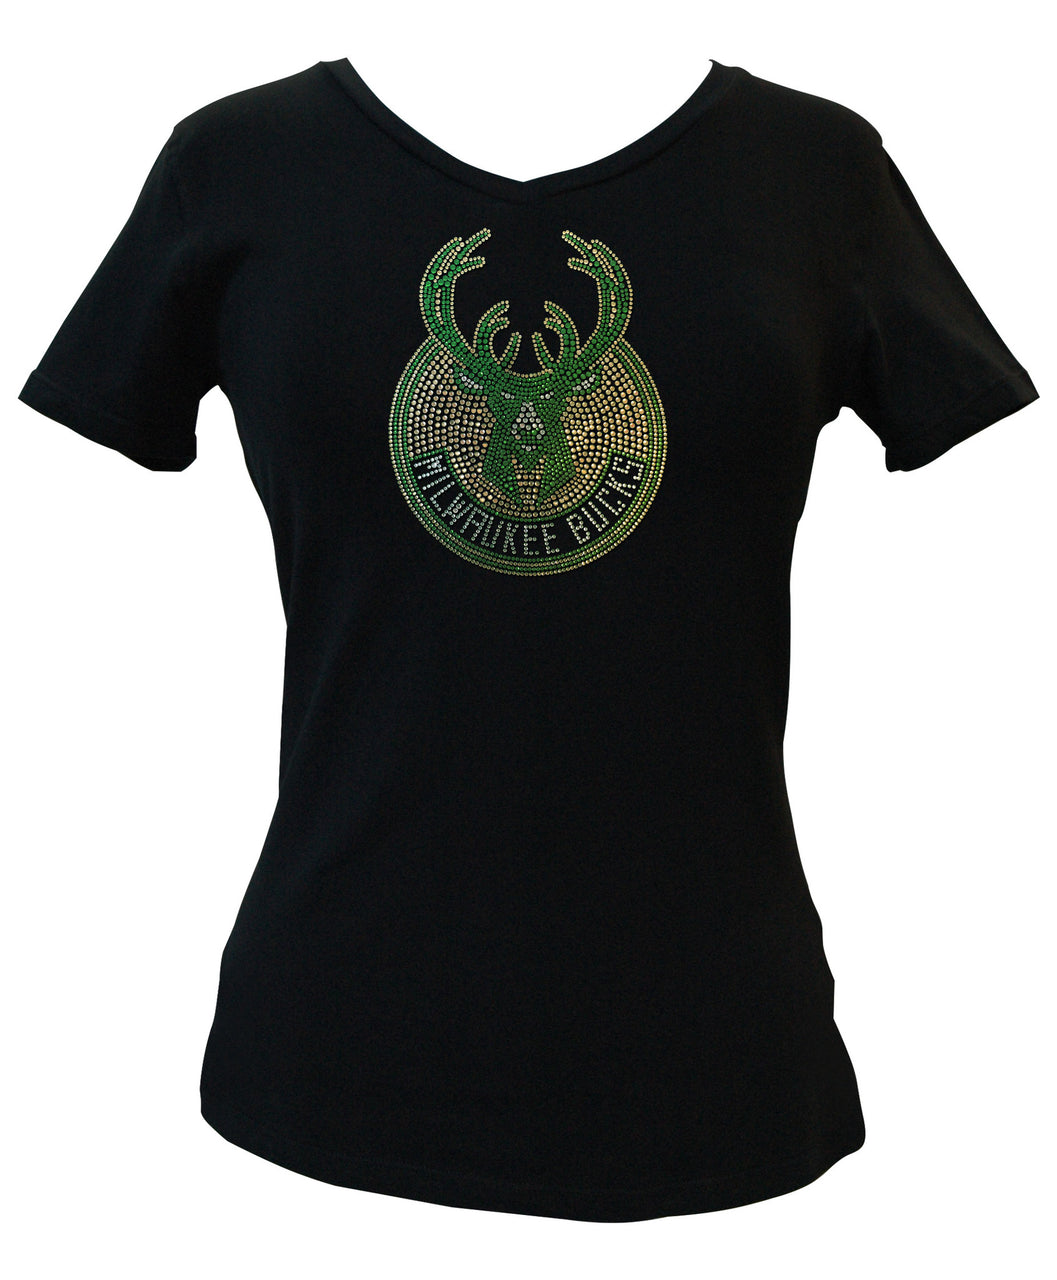 Official Milwaukee Bucks Rhinestone V-Neck Tee